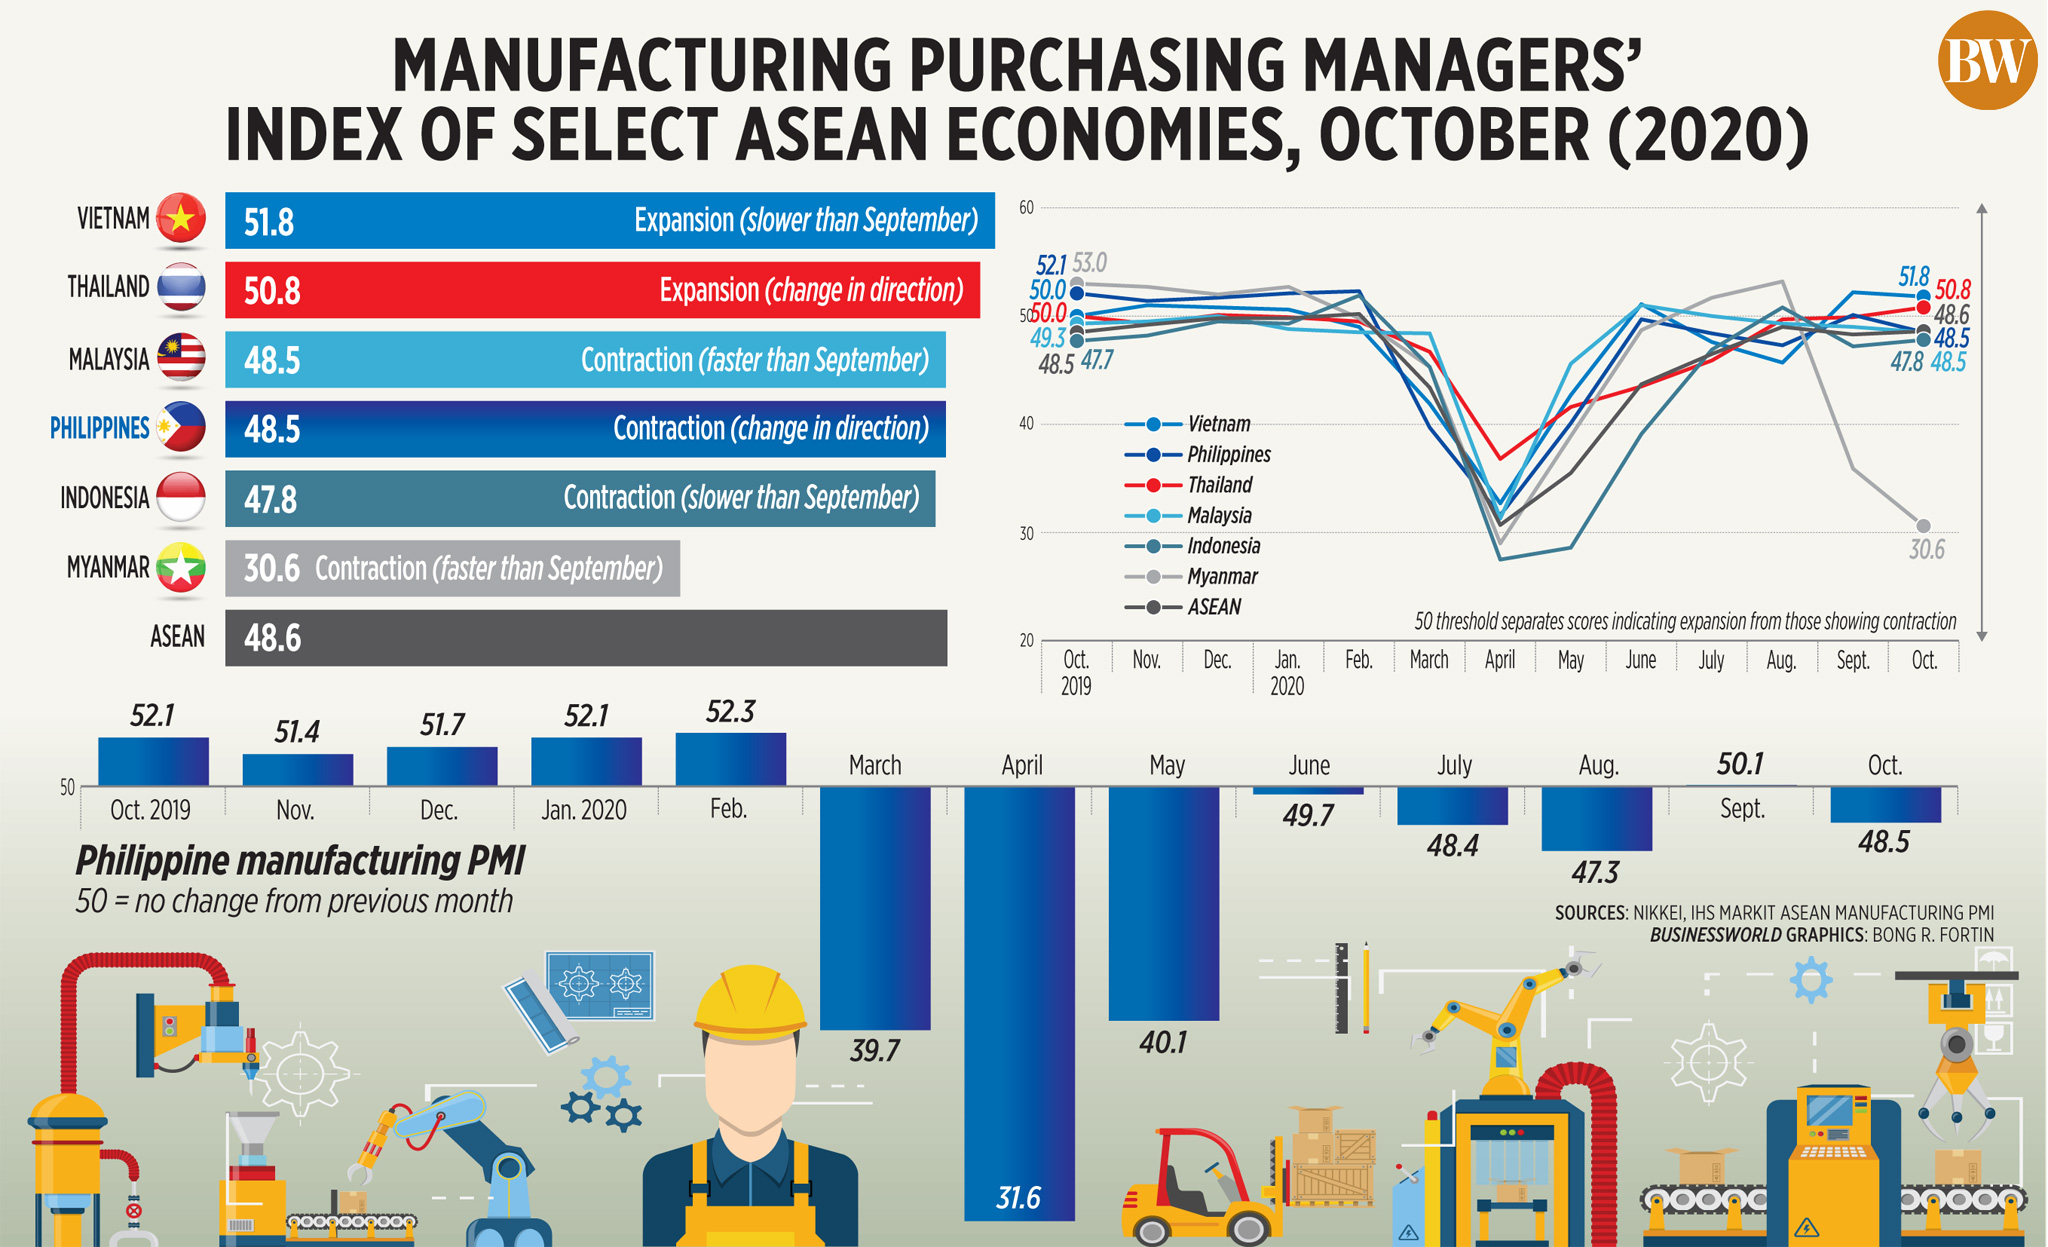 50562792032 fee85094d8 o - Manufacturing purchasing managers' index of select ASEAN economies, October (2020)